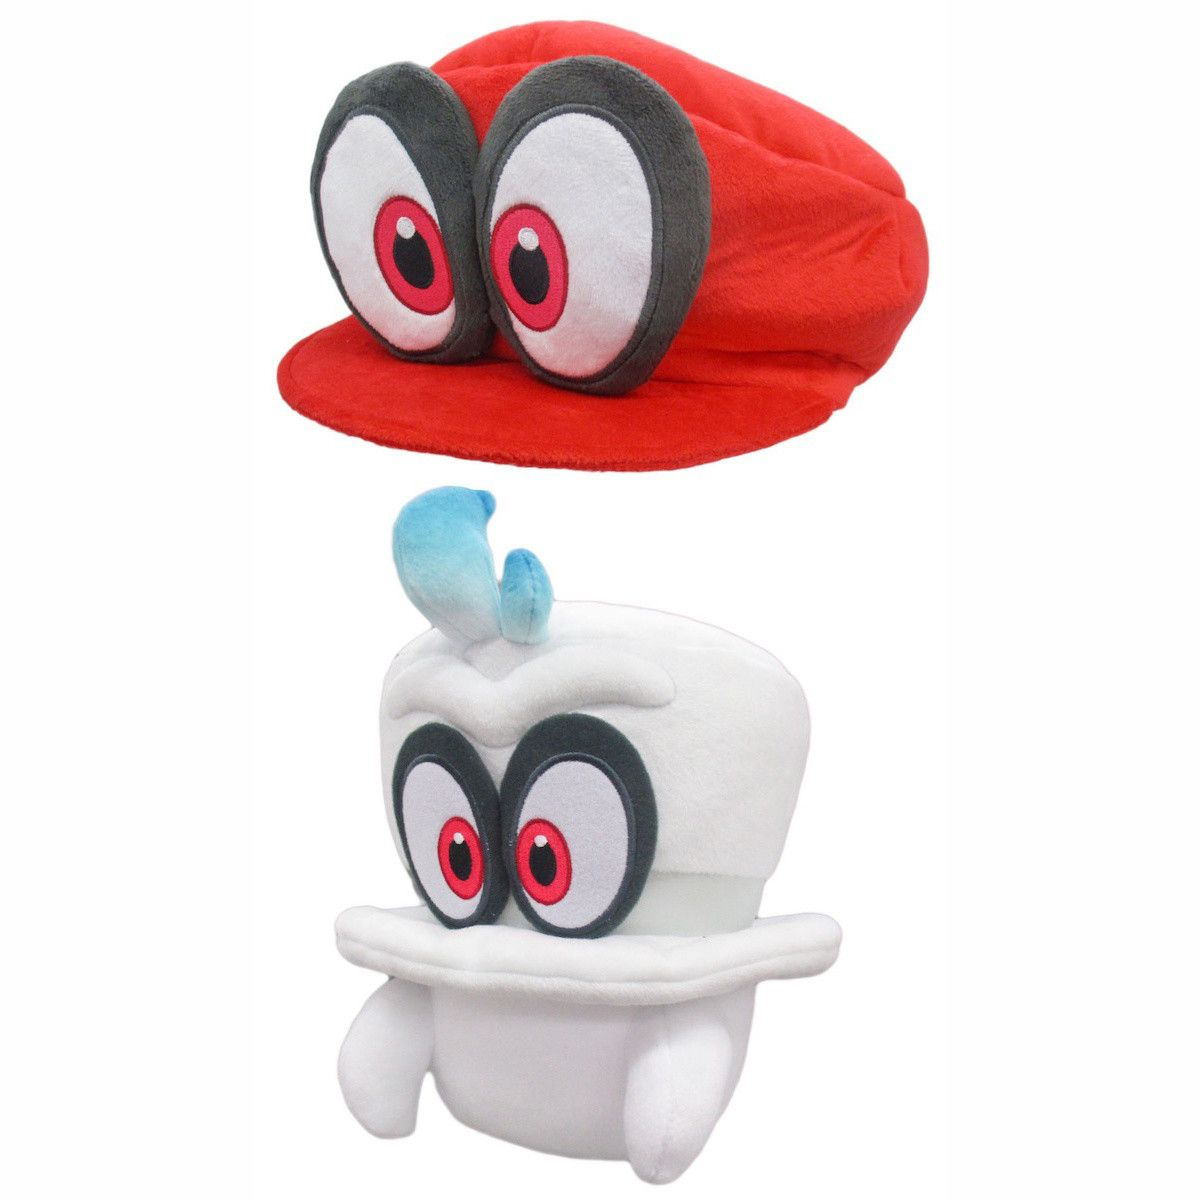 Super Mario Odyssey Cappy Plush Collection | Game Related Stuff